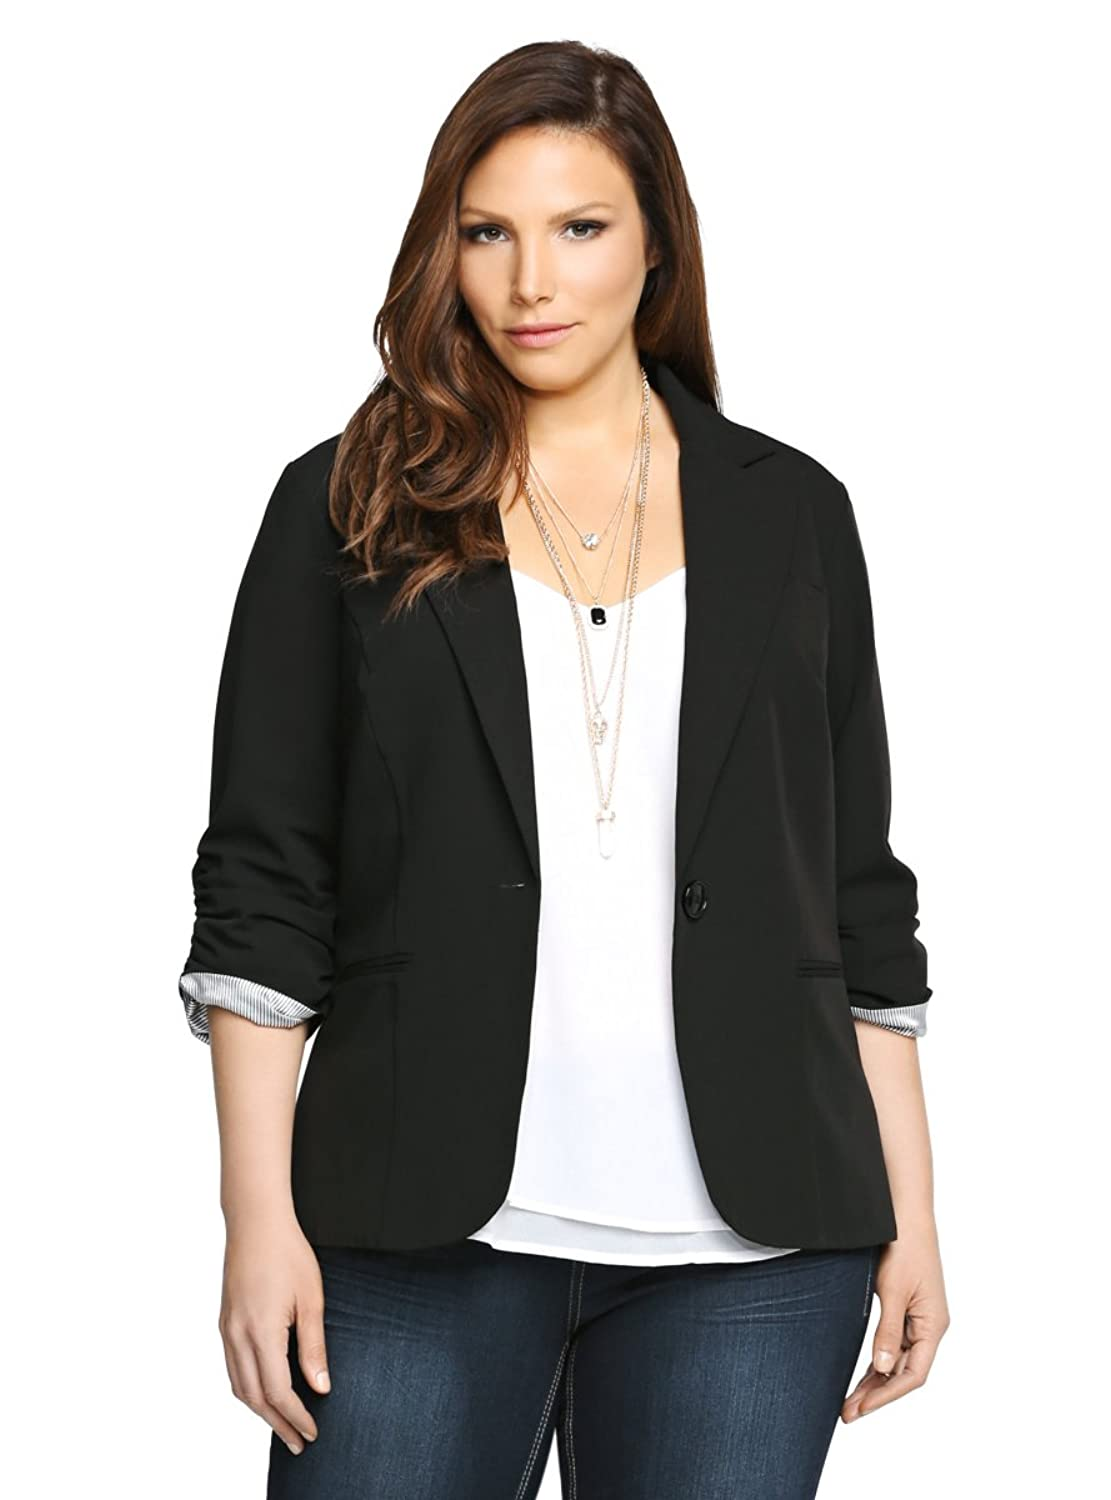 Juniors' Jackets & Blazers: Free Shipping on orders over $45 at hereaupy06.gq - Your Online Juniors' Clothing Store! Get 5% in rewards with Club O! CONNECTED $ Womens New Black Bolero Casual Jacket Juniors XL B+B. SALE ends soon ends in 23 hours. Quick View. Sale $